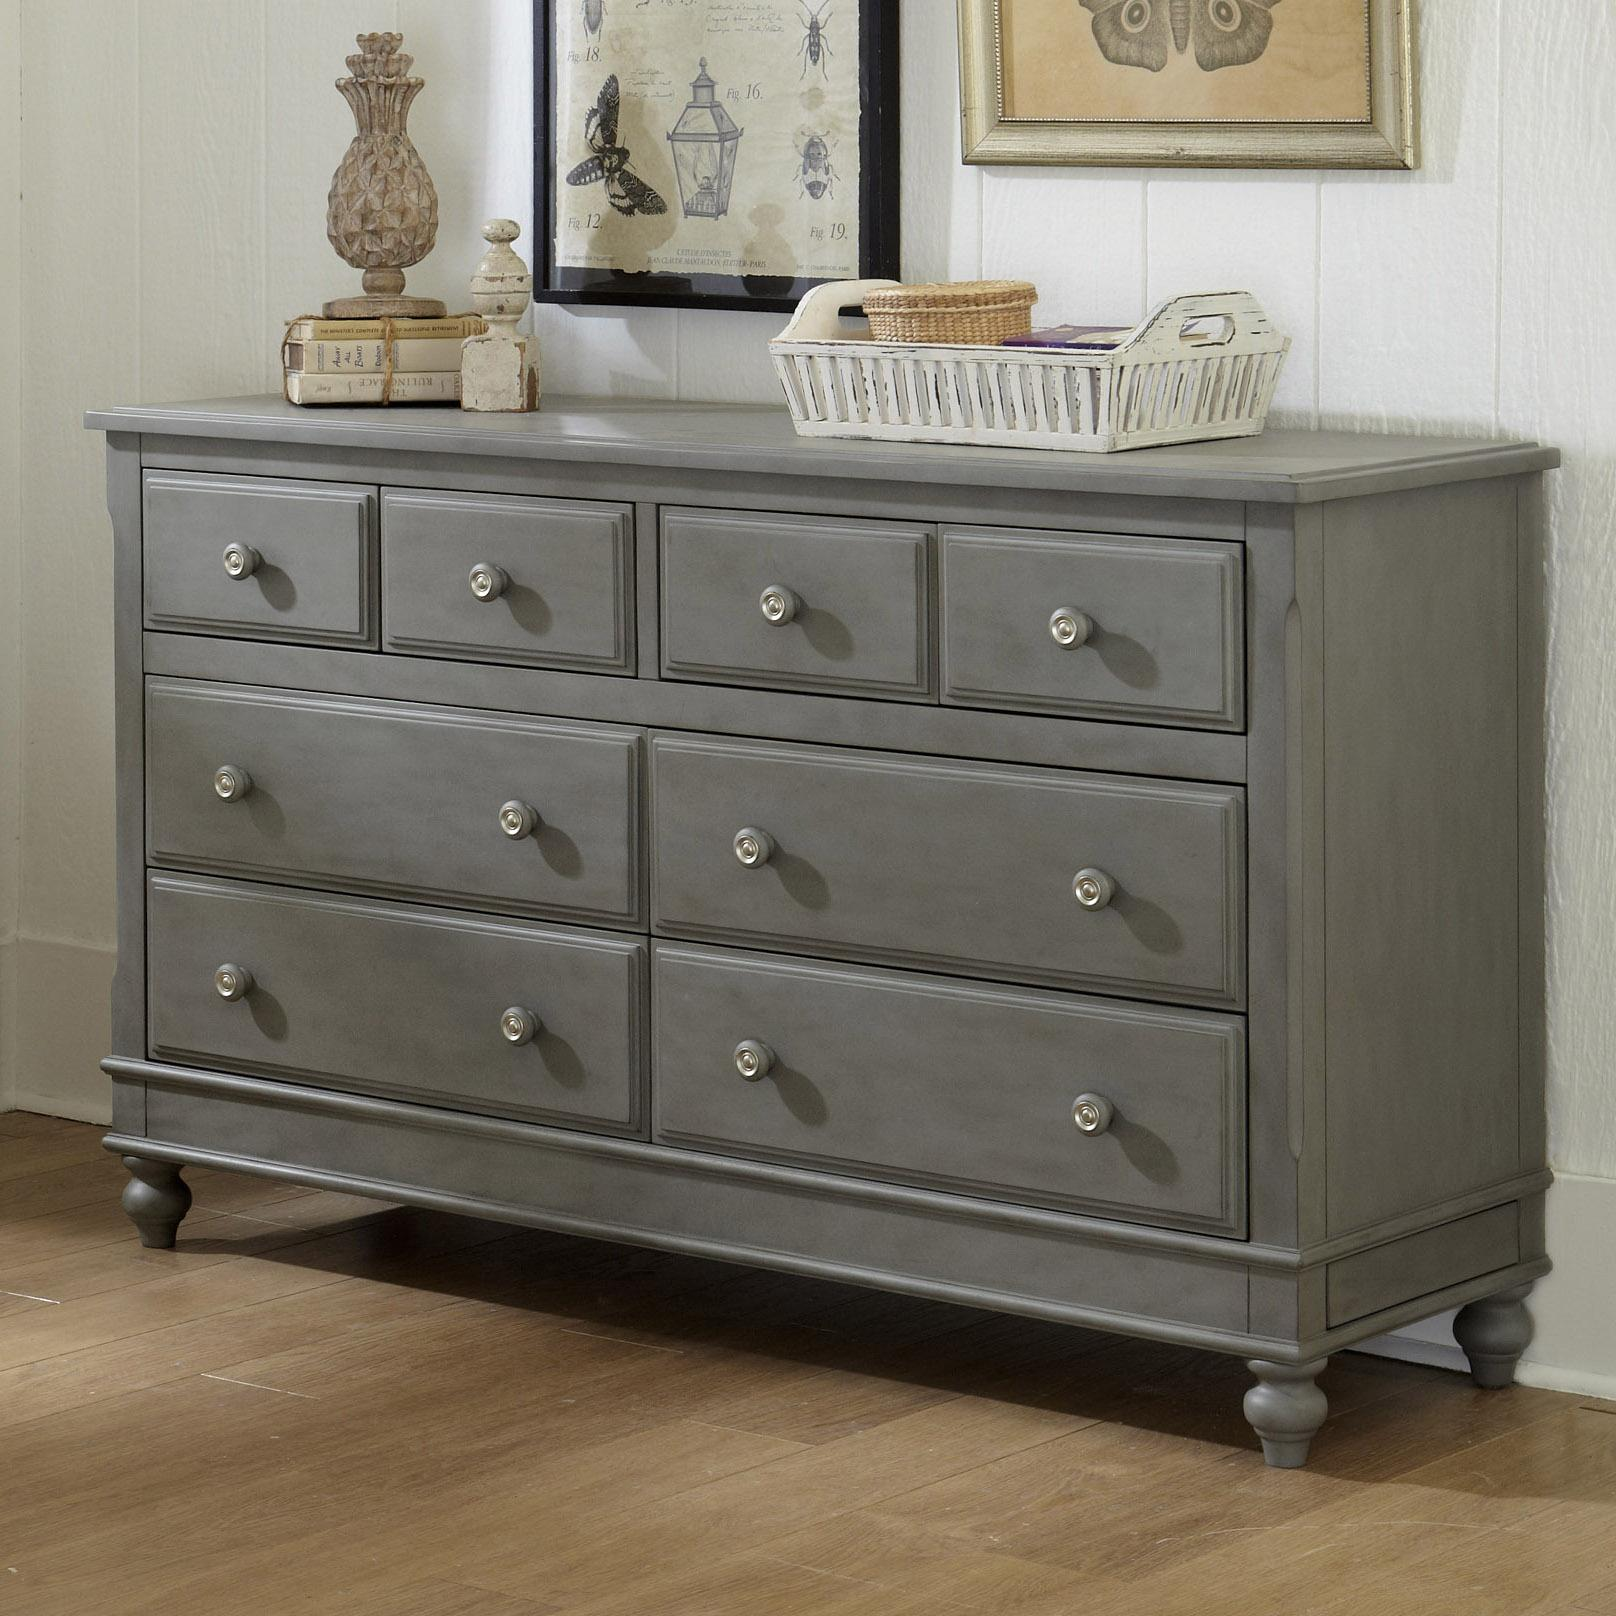 gray rustic weathered wood accent image cottage itm country dresser is chest loading